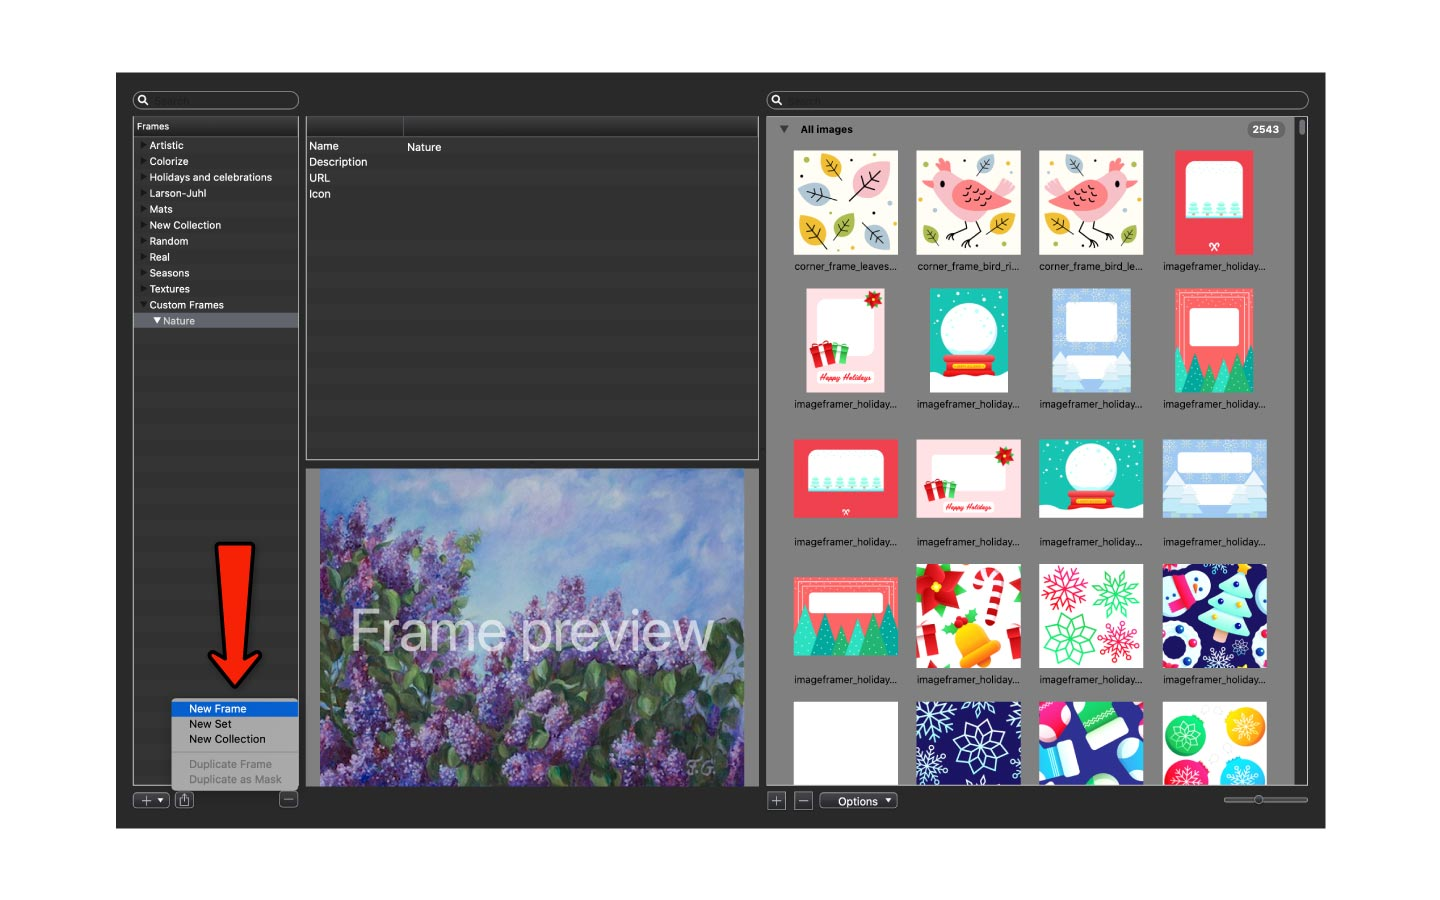 Creating a new frame in ImageFramer